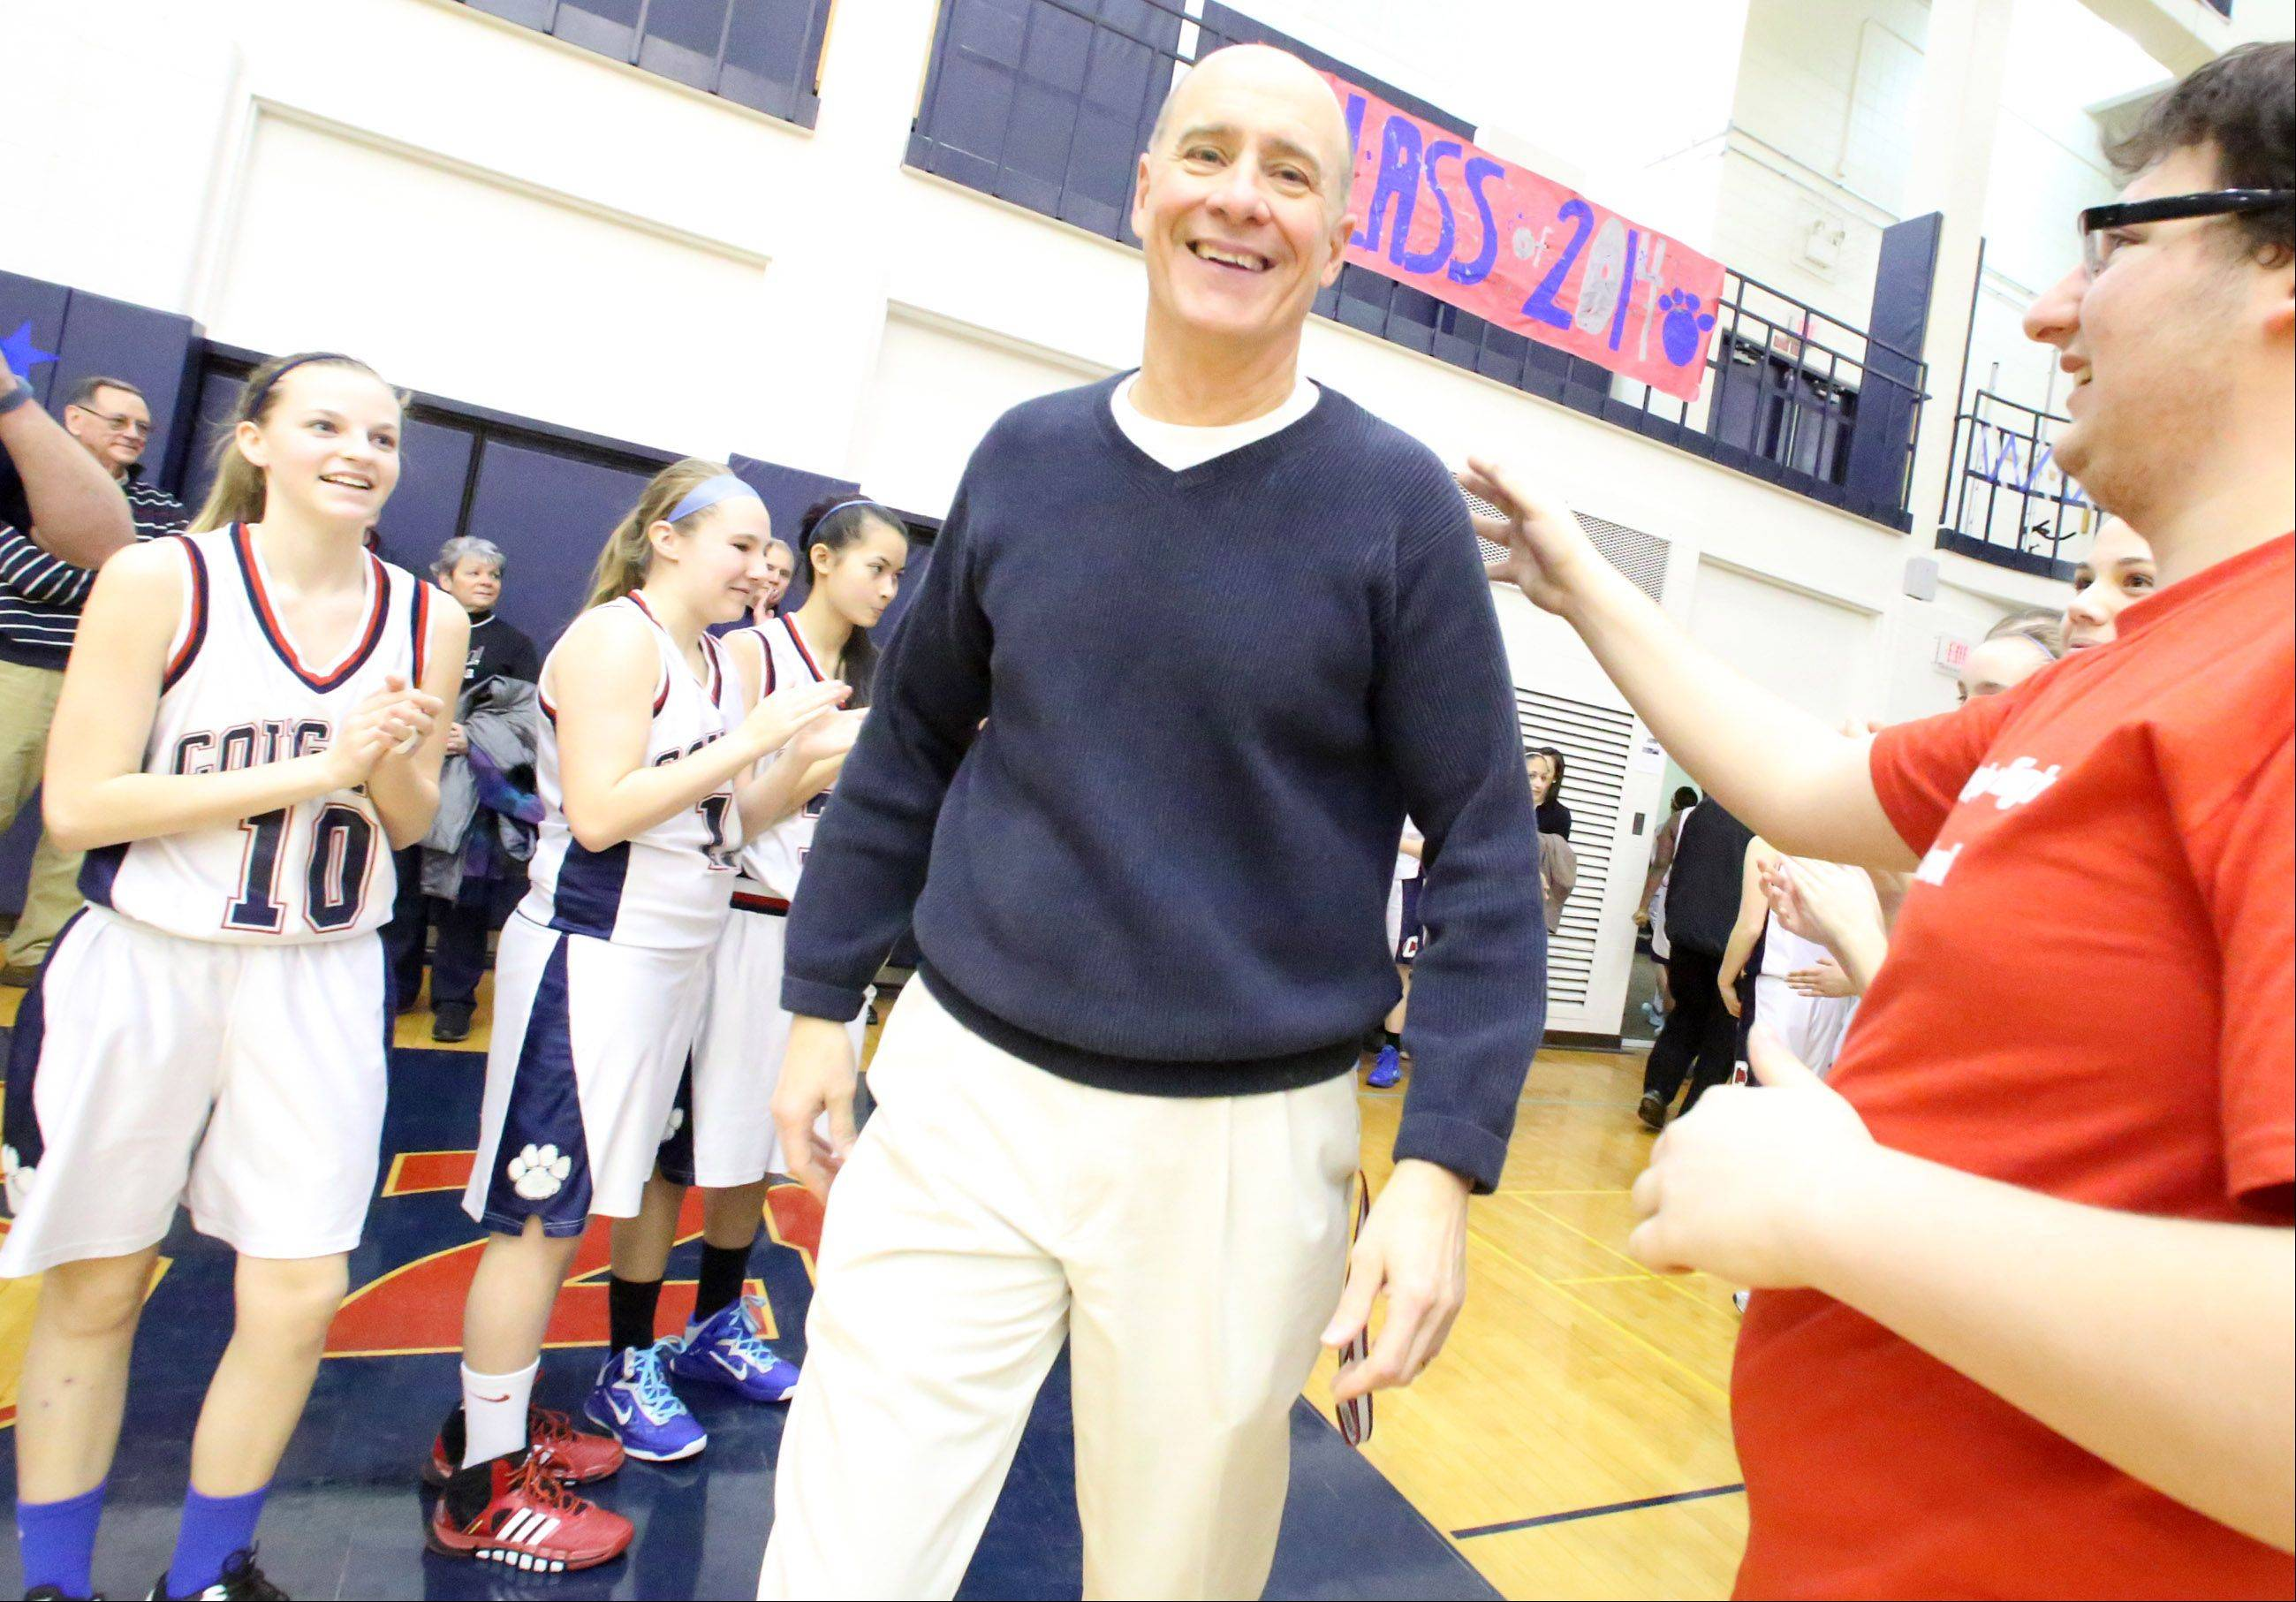 Dan Travers, Conant head girls varsity coach, takes the floor on Saturday for a game with Crystal Lake South at Conant in Hoffman Estates.